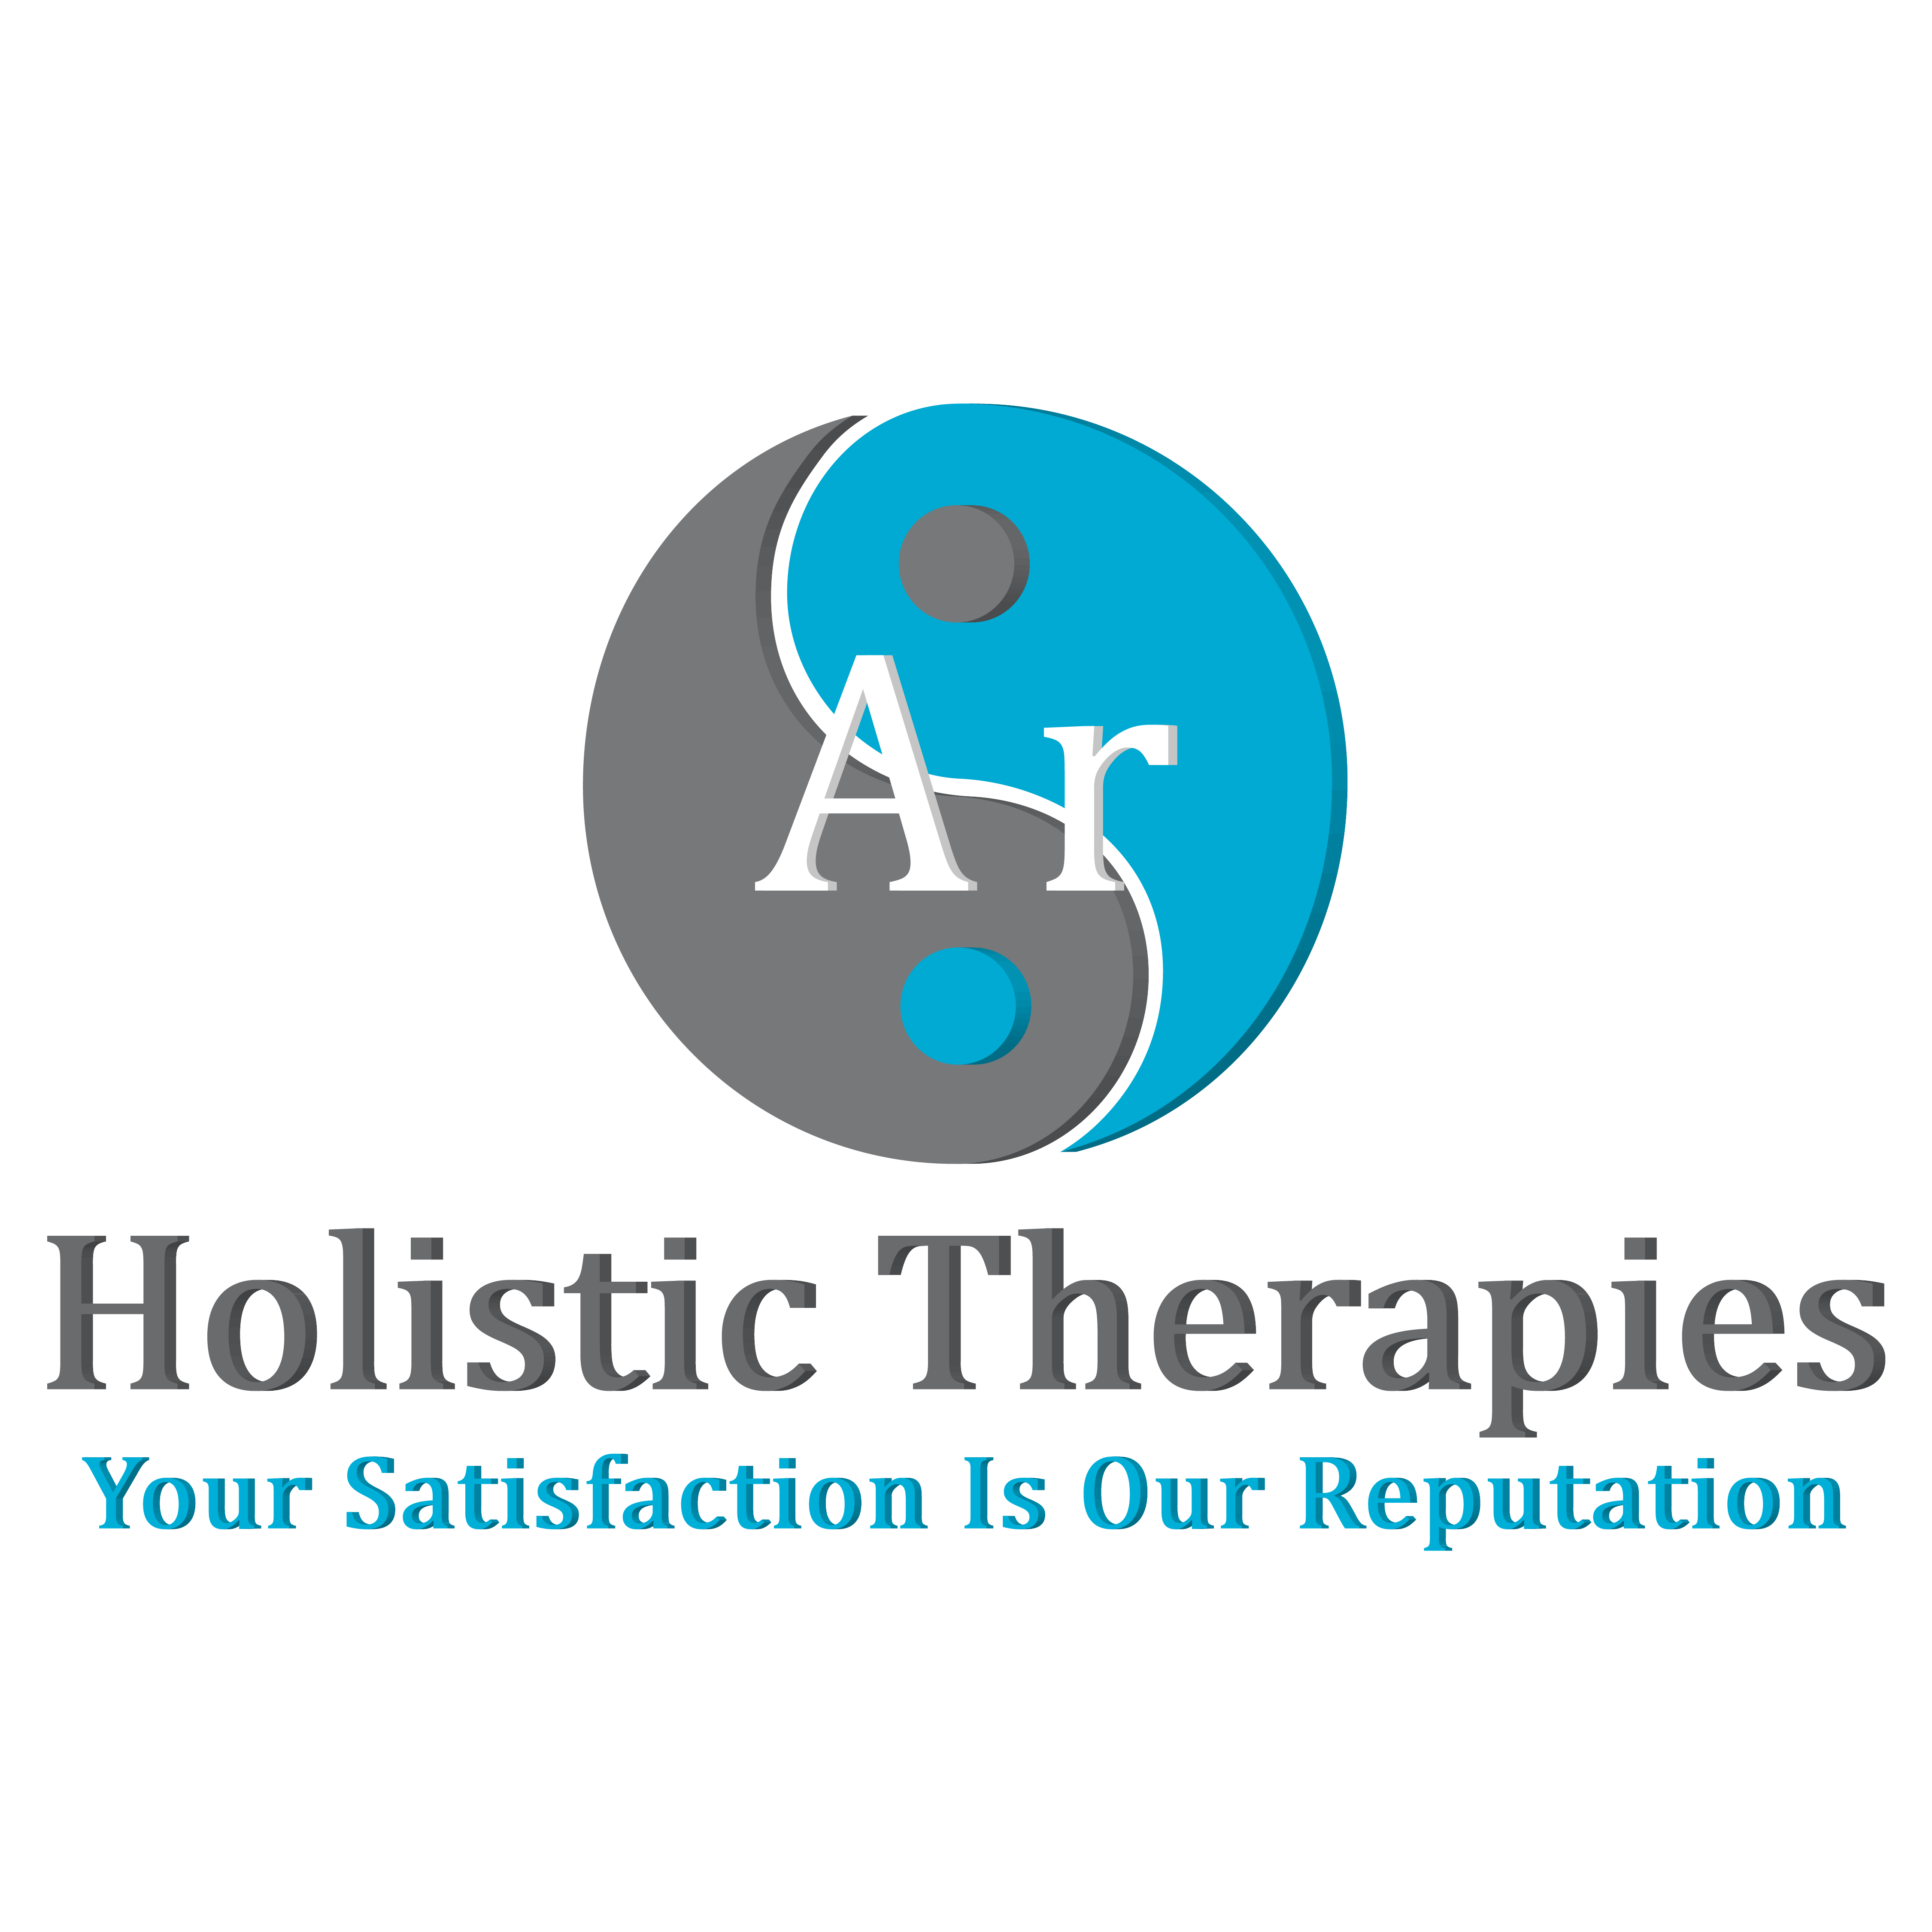 Mohammed Arshad – AR Holistic Therapies